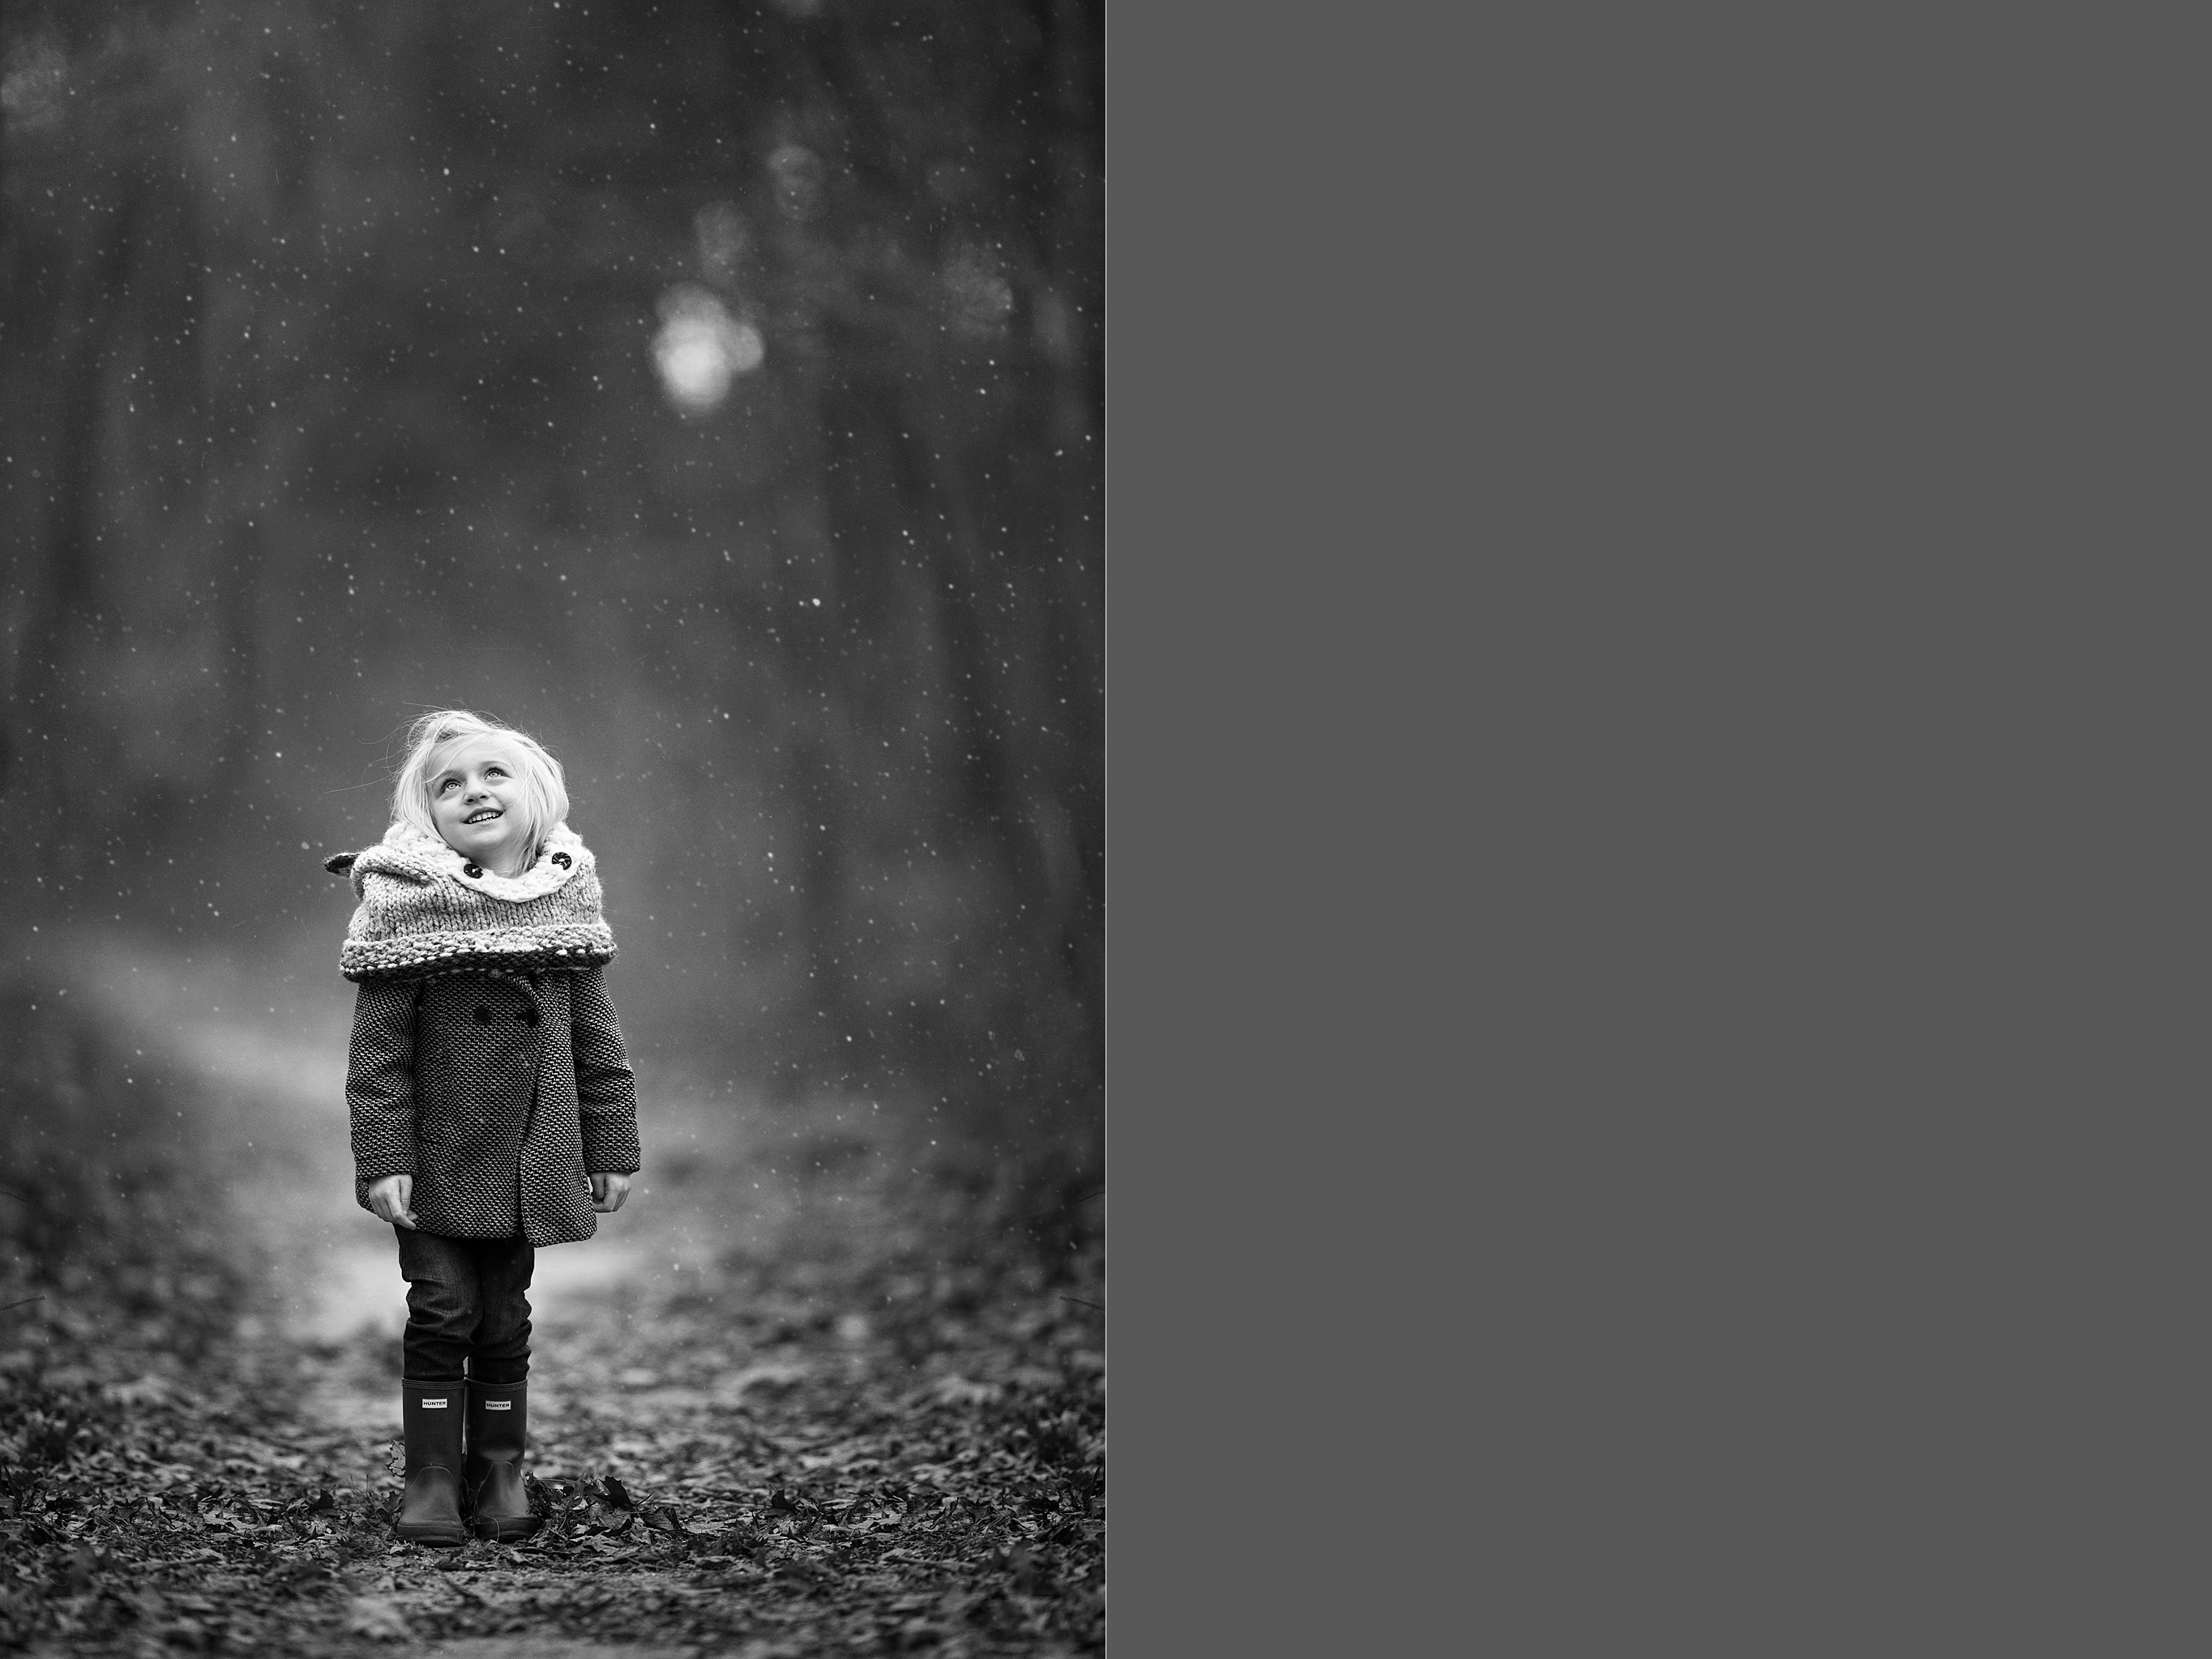 hello-olivia-photography-long-island-photographer-middle-island-girl-snow-hunter-boots-suffolk-county-woods-standing-outside-cold-snowing-icy-freezing-flurries-Let-It-Snow-www.hellooliviaphotography.com-middle-island